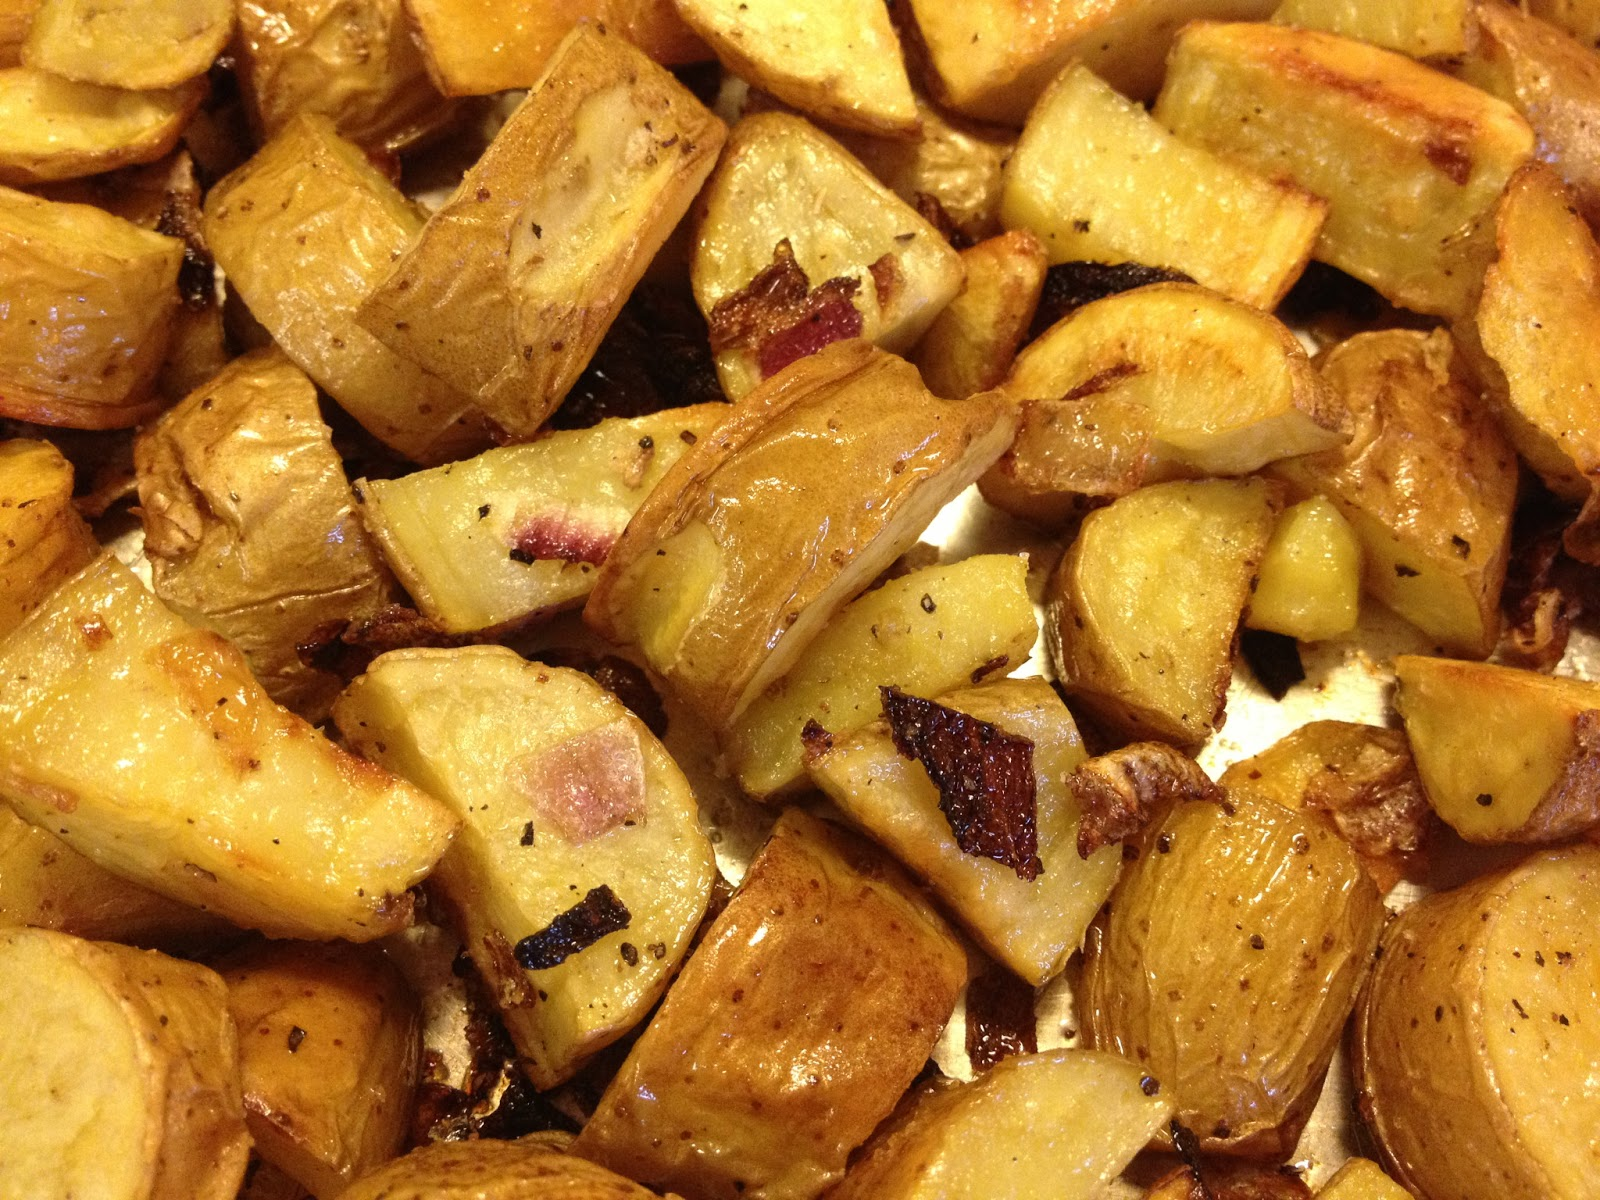 Flavors of the Umpqua: Oven Home Fries with Yukon Fingerlings